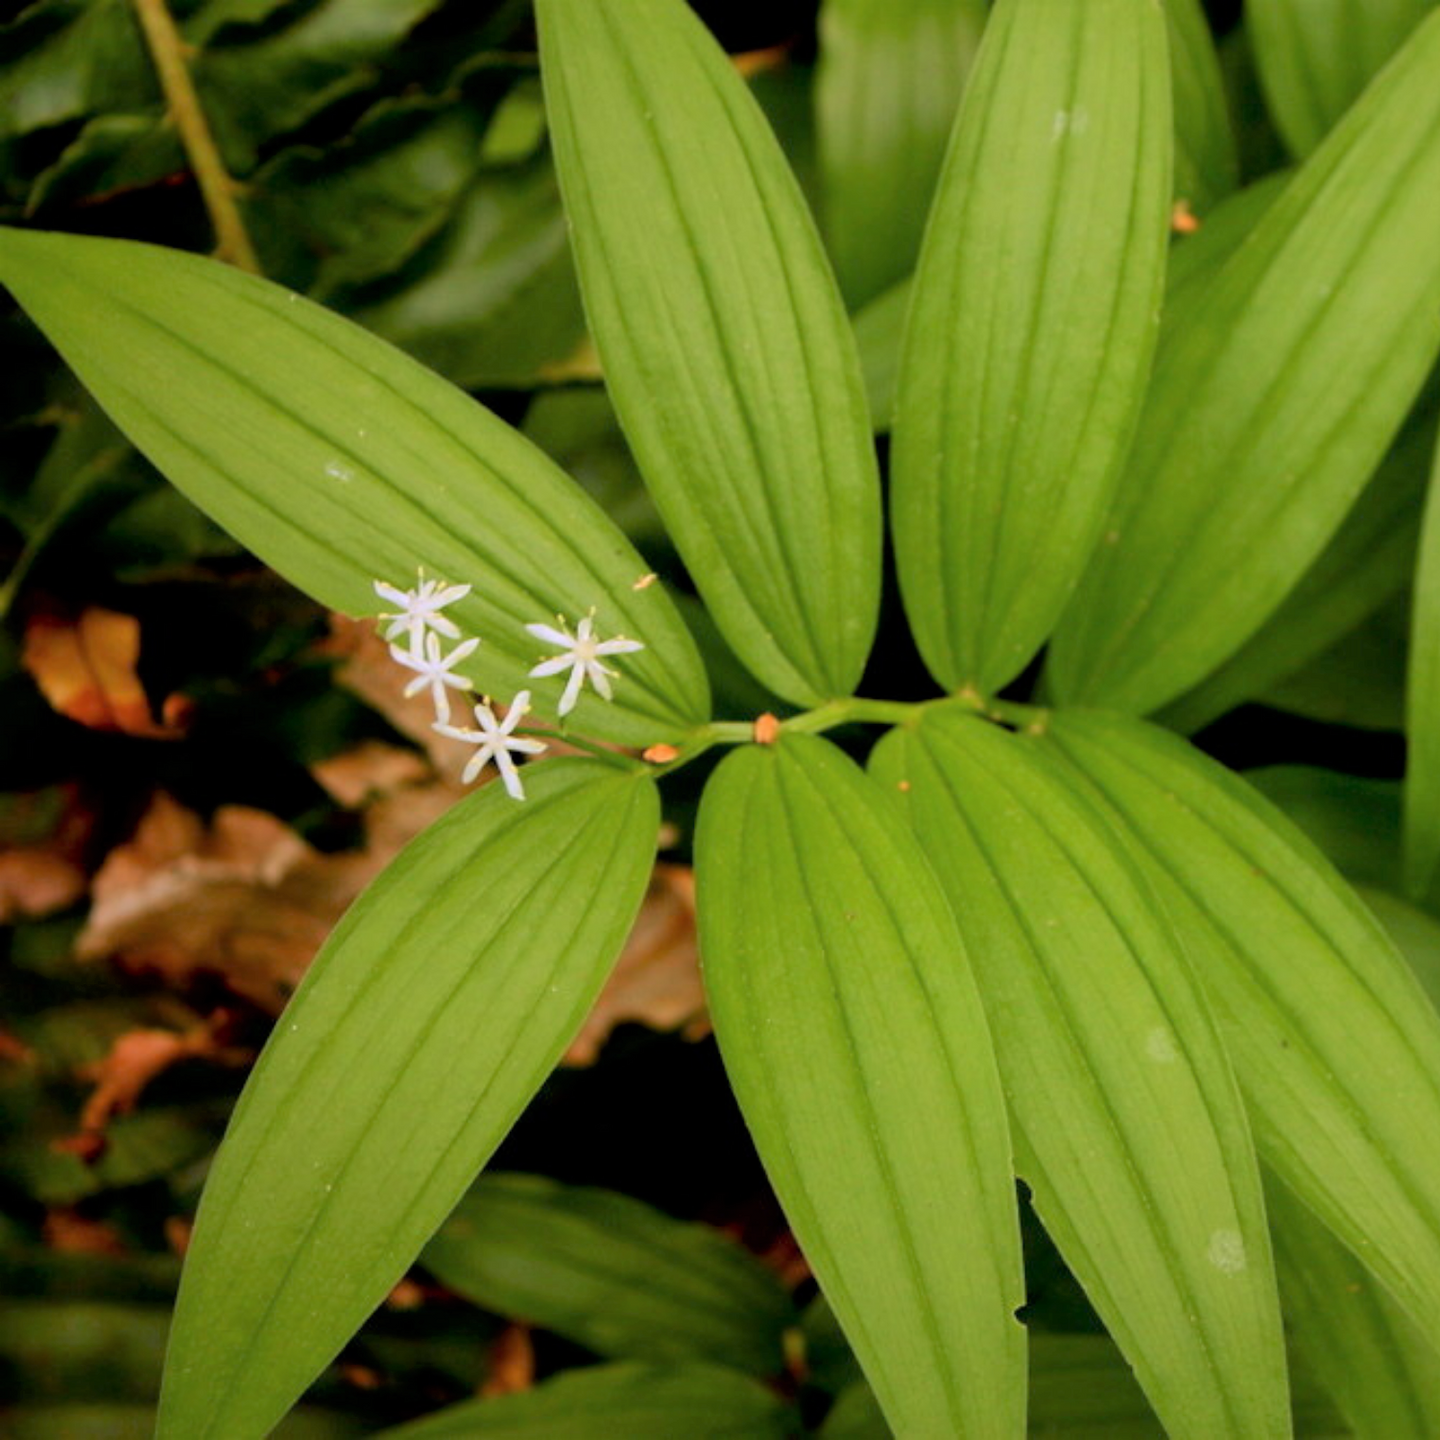 Starry False Solomon's Seal (Maianthemum stellata). One of 100+ species of Pacific Northwest native plants available at Sparrowhawk Native Plants, Native Plant Nursery in Portland, Oregon.